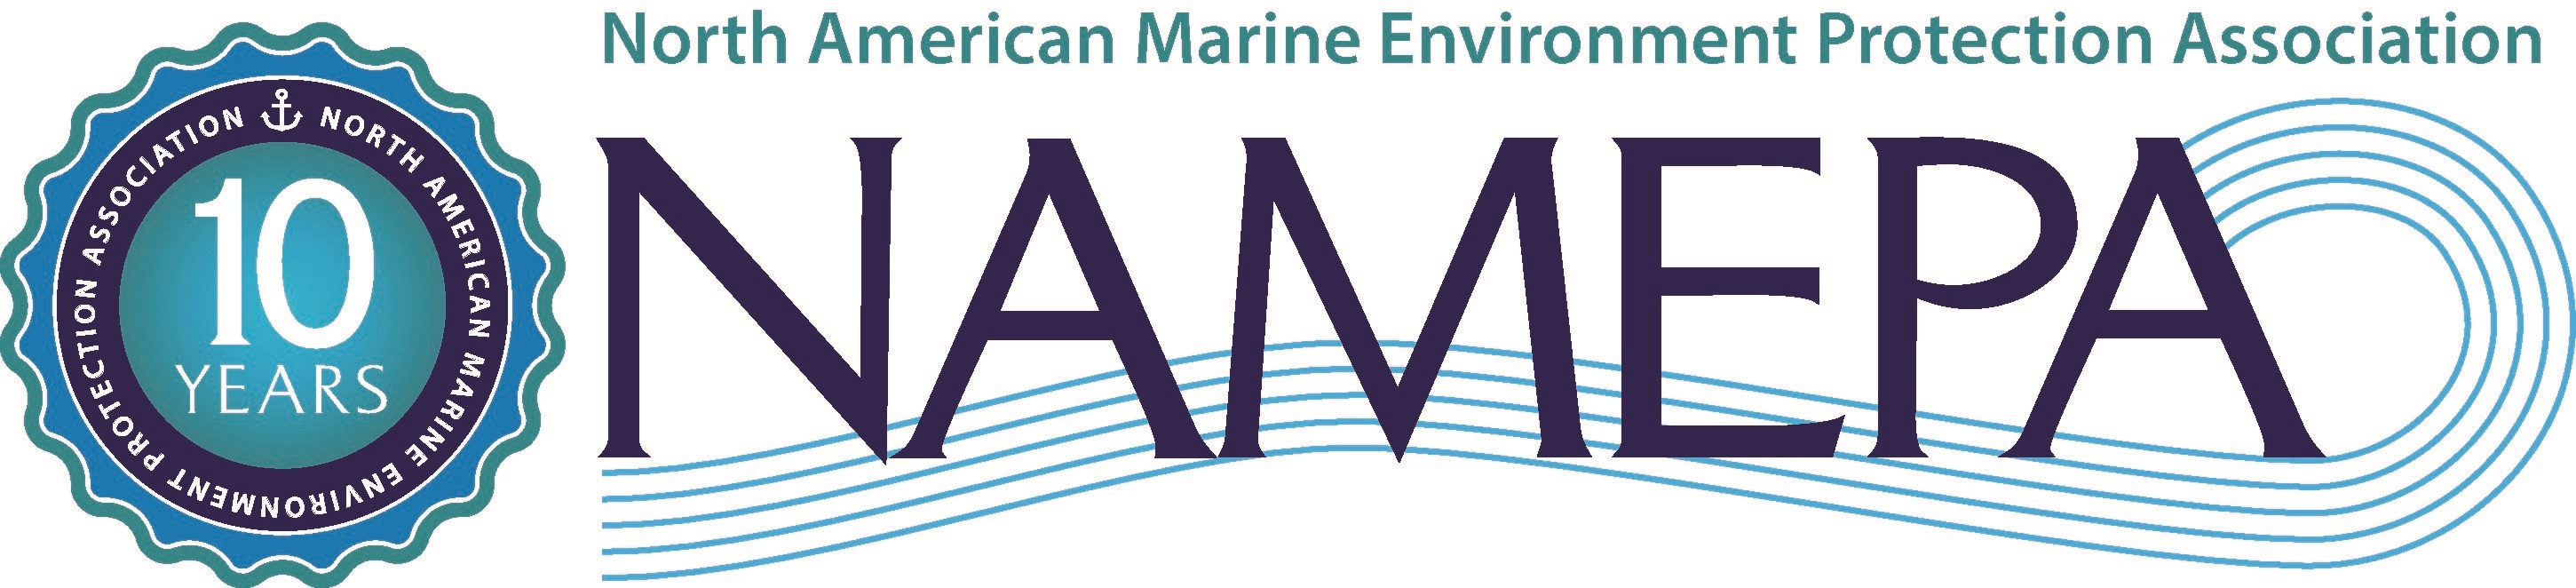 NAMEPA (The North American Marine Environment Protection Association)